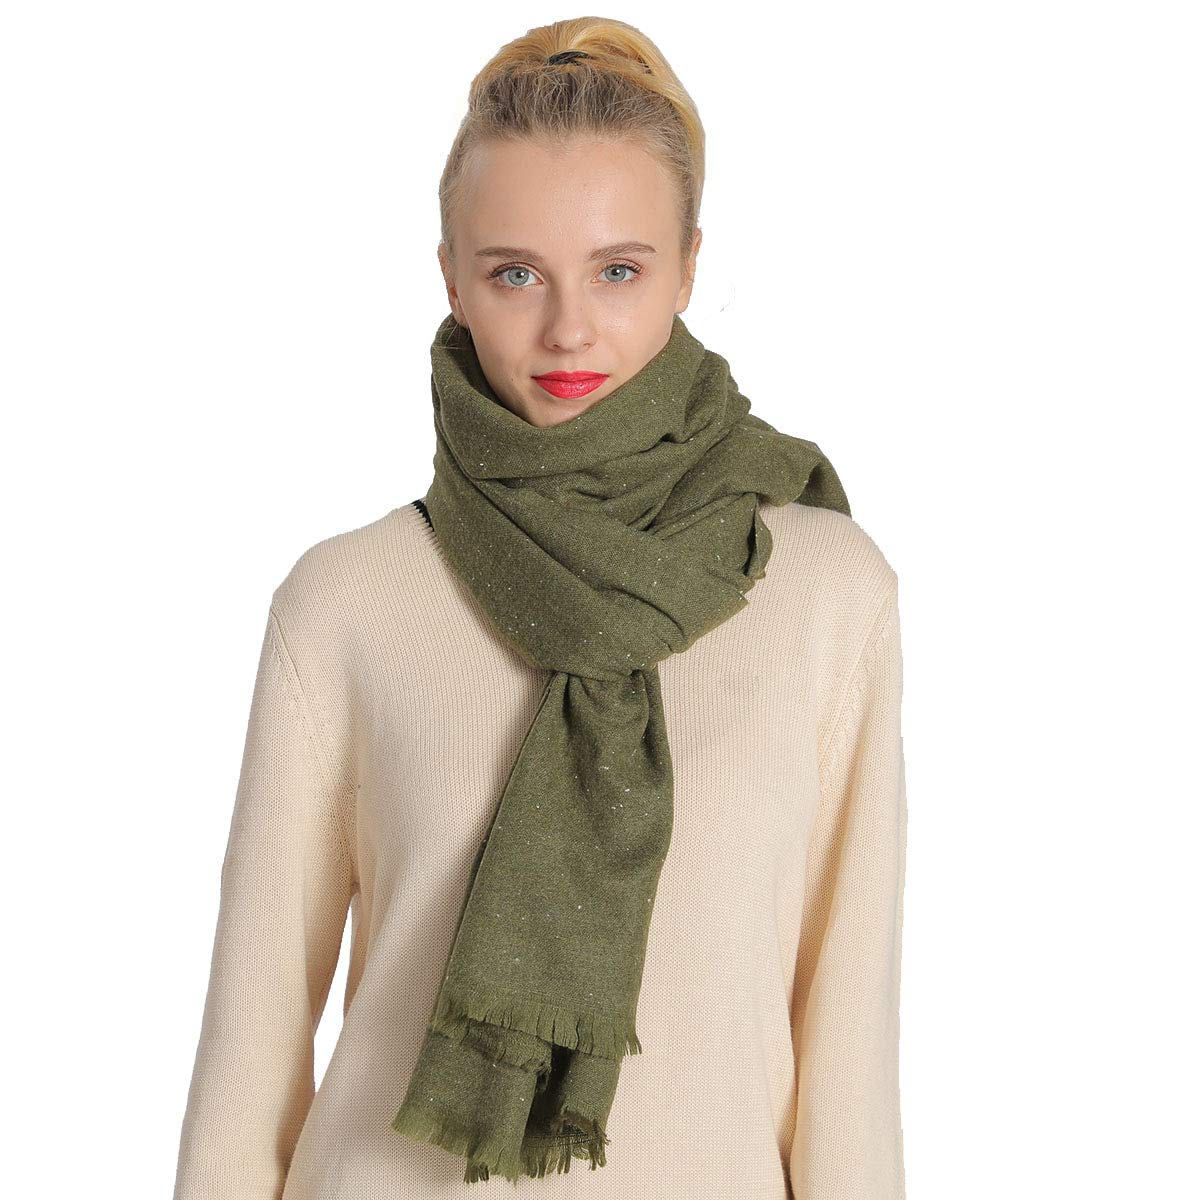 Army Green NovForth Cashmere Scarf Blanket Large Soft Pashmina Shawl Wrap Winter Extra Large(31.5 x78.5 ) Wool Scarf for Womens Girls